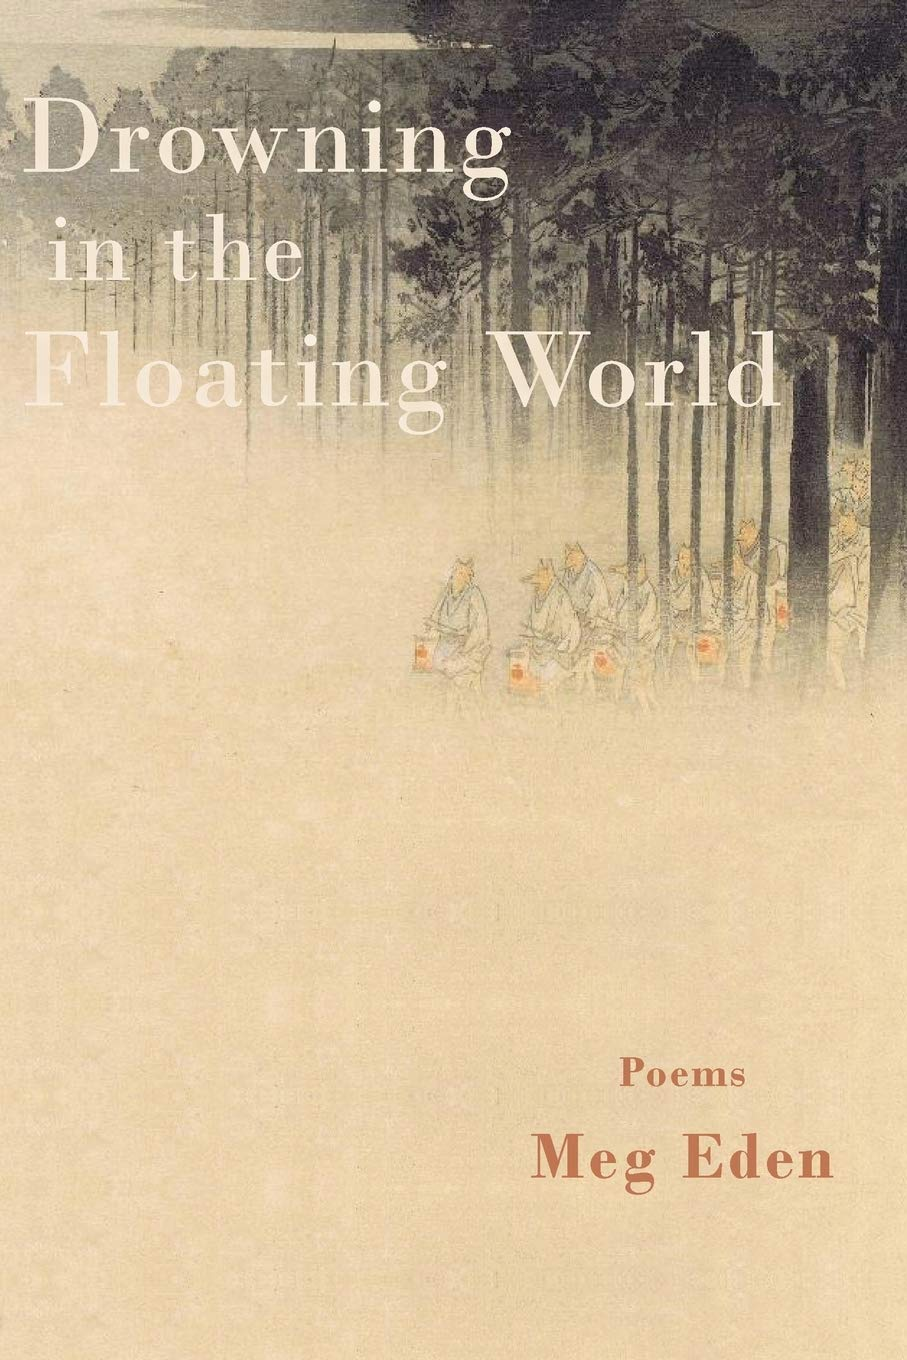 Drowning in the Floating World